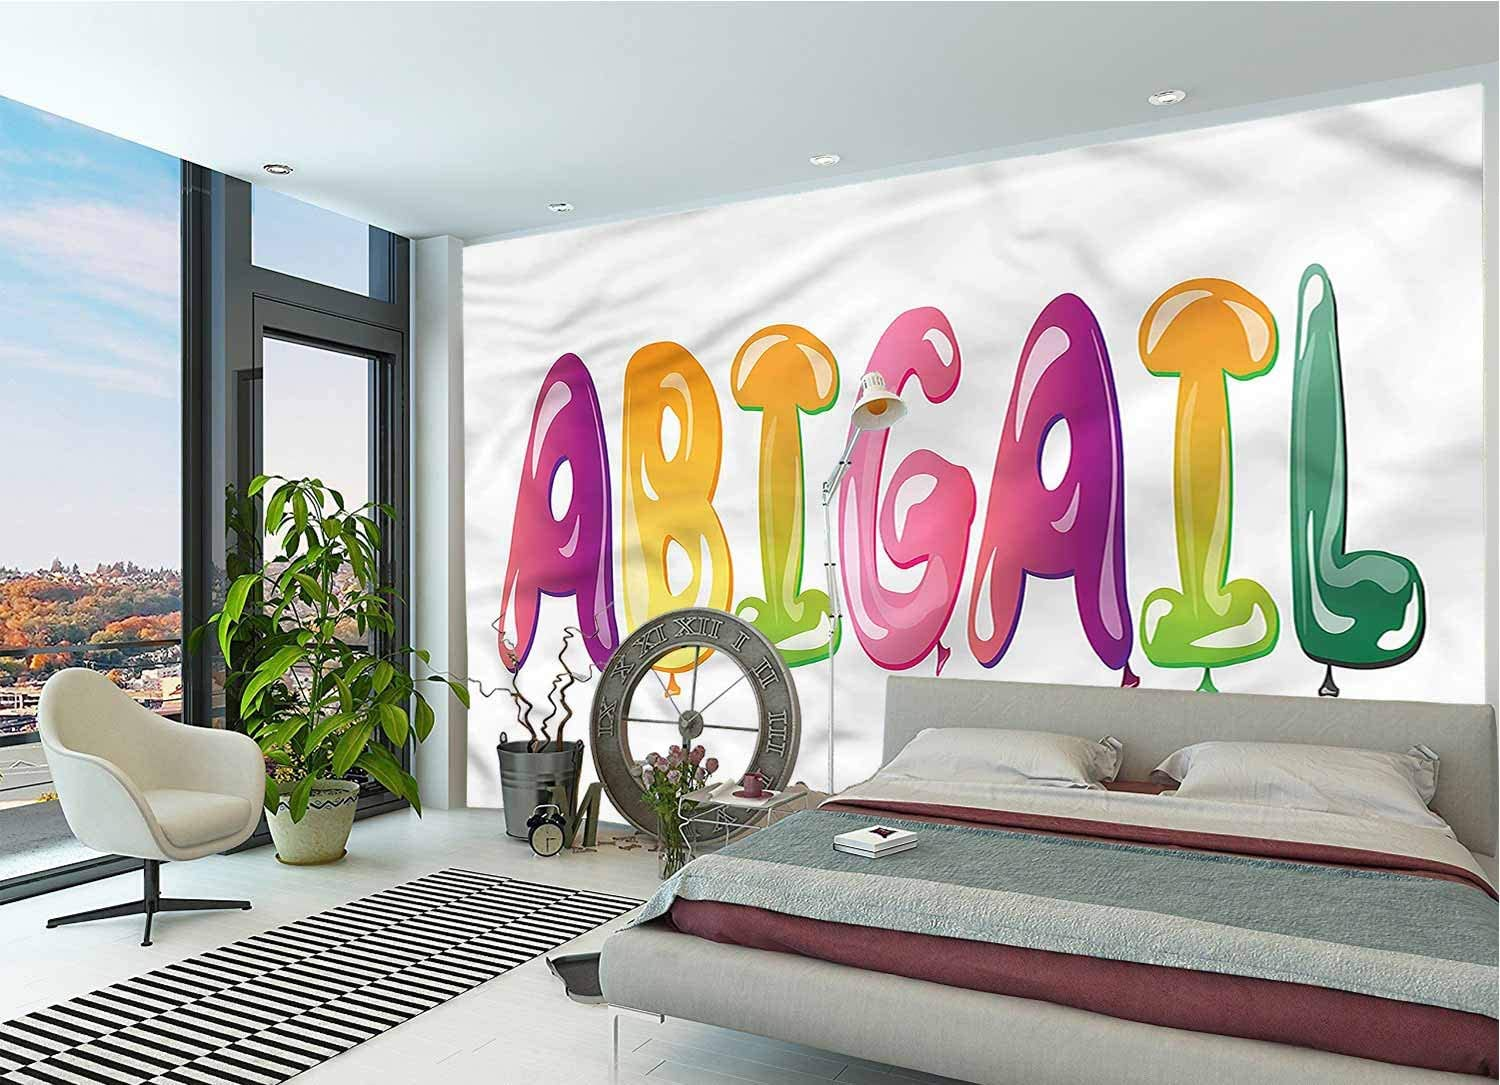 LCGGDB Abigail Large Wall Mural,Fathers Joy Girl Name Removable Large Sticker Foil Wall Decor for Office Kids Bedroom Nursery Family Decor-144x100 Inch